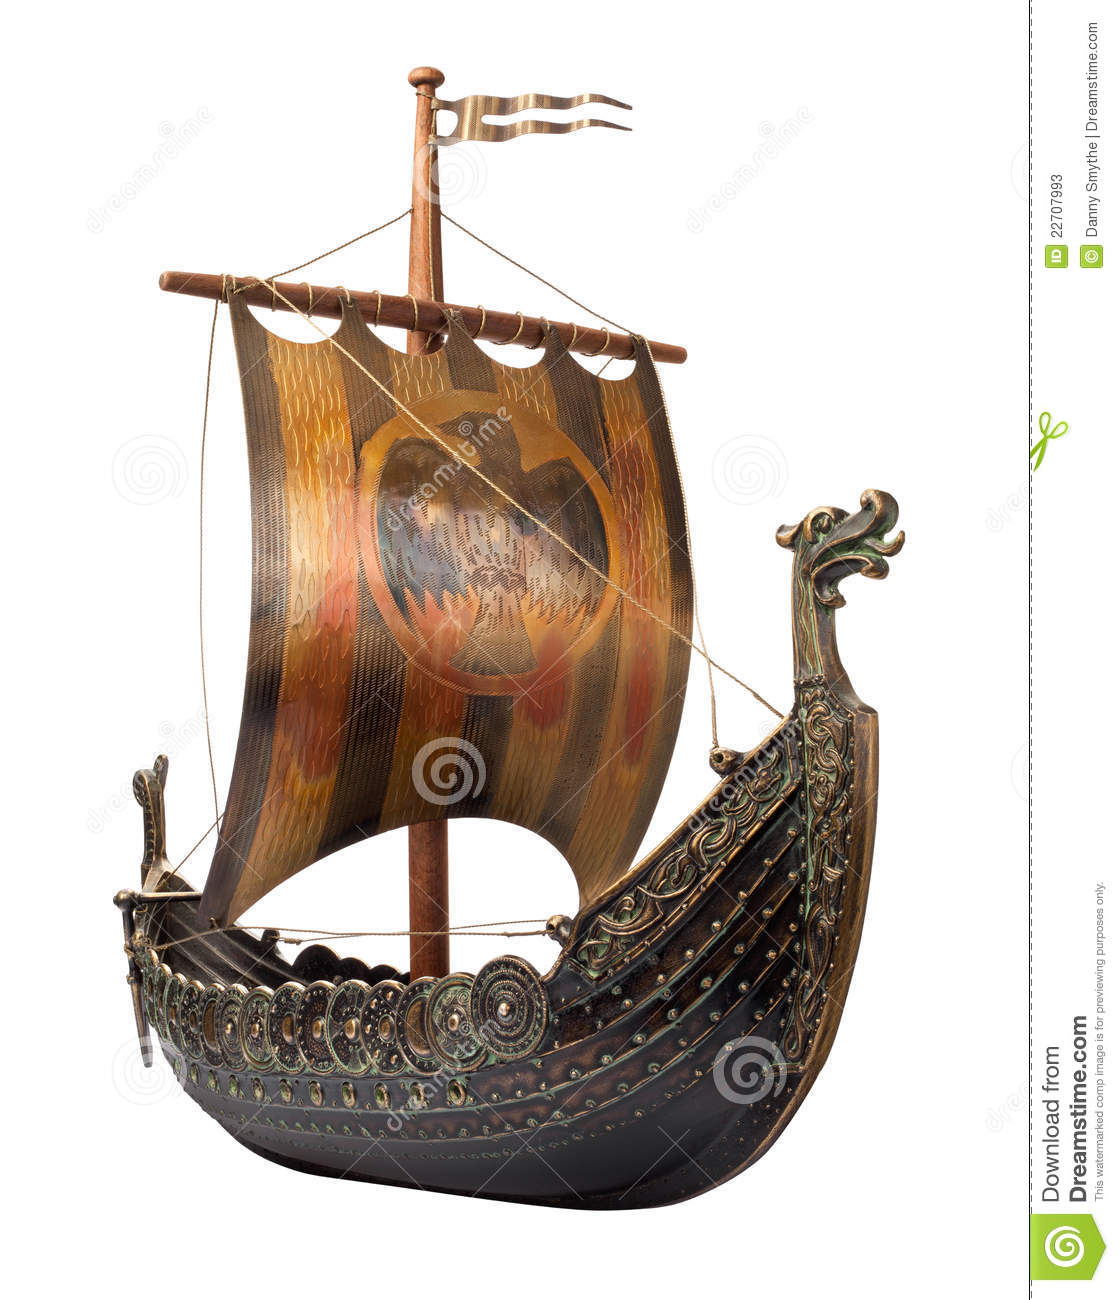 Antique Viking Ship Isolated On White Stock Photos - Image: 22707993: www.dreamstime.com/stock-photos-antique-viking-ship-isolated-white...